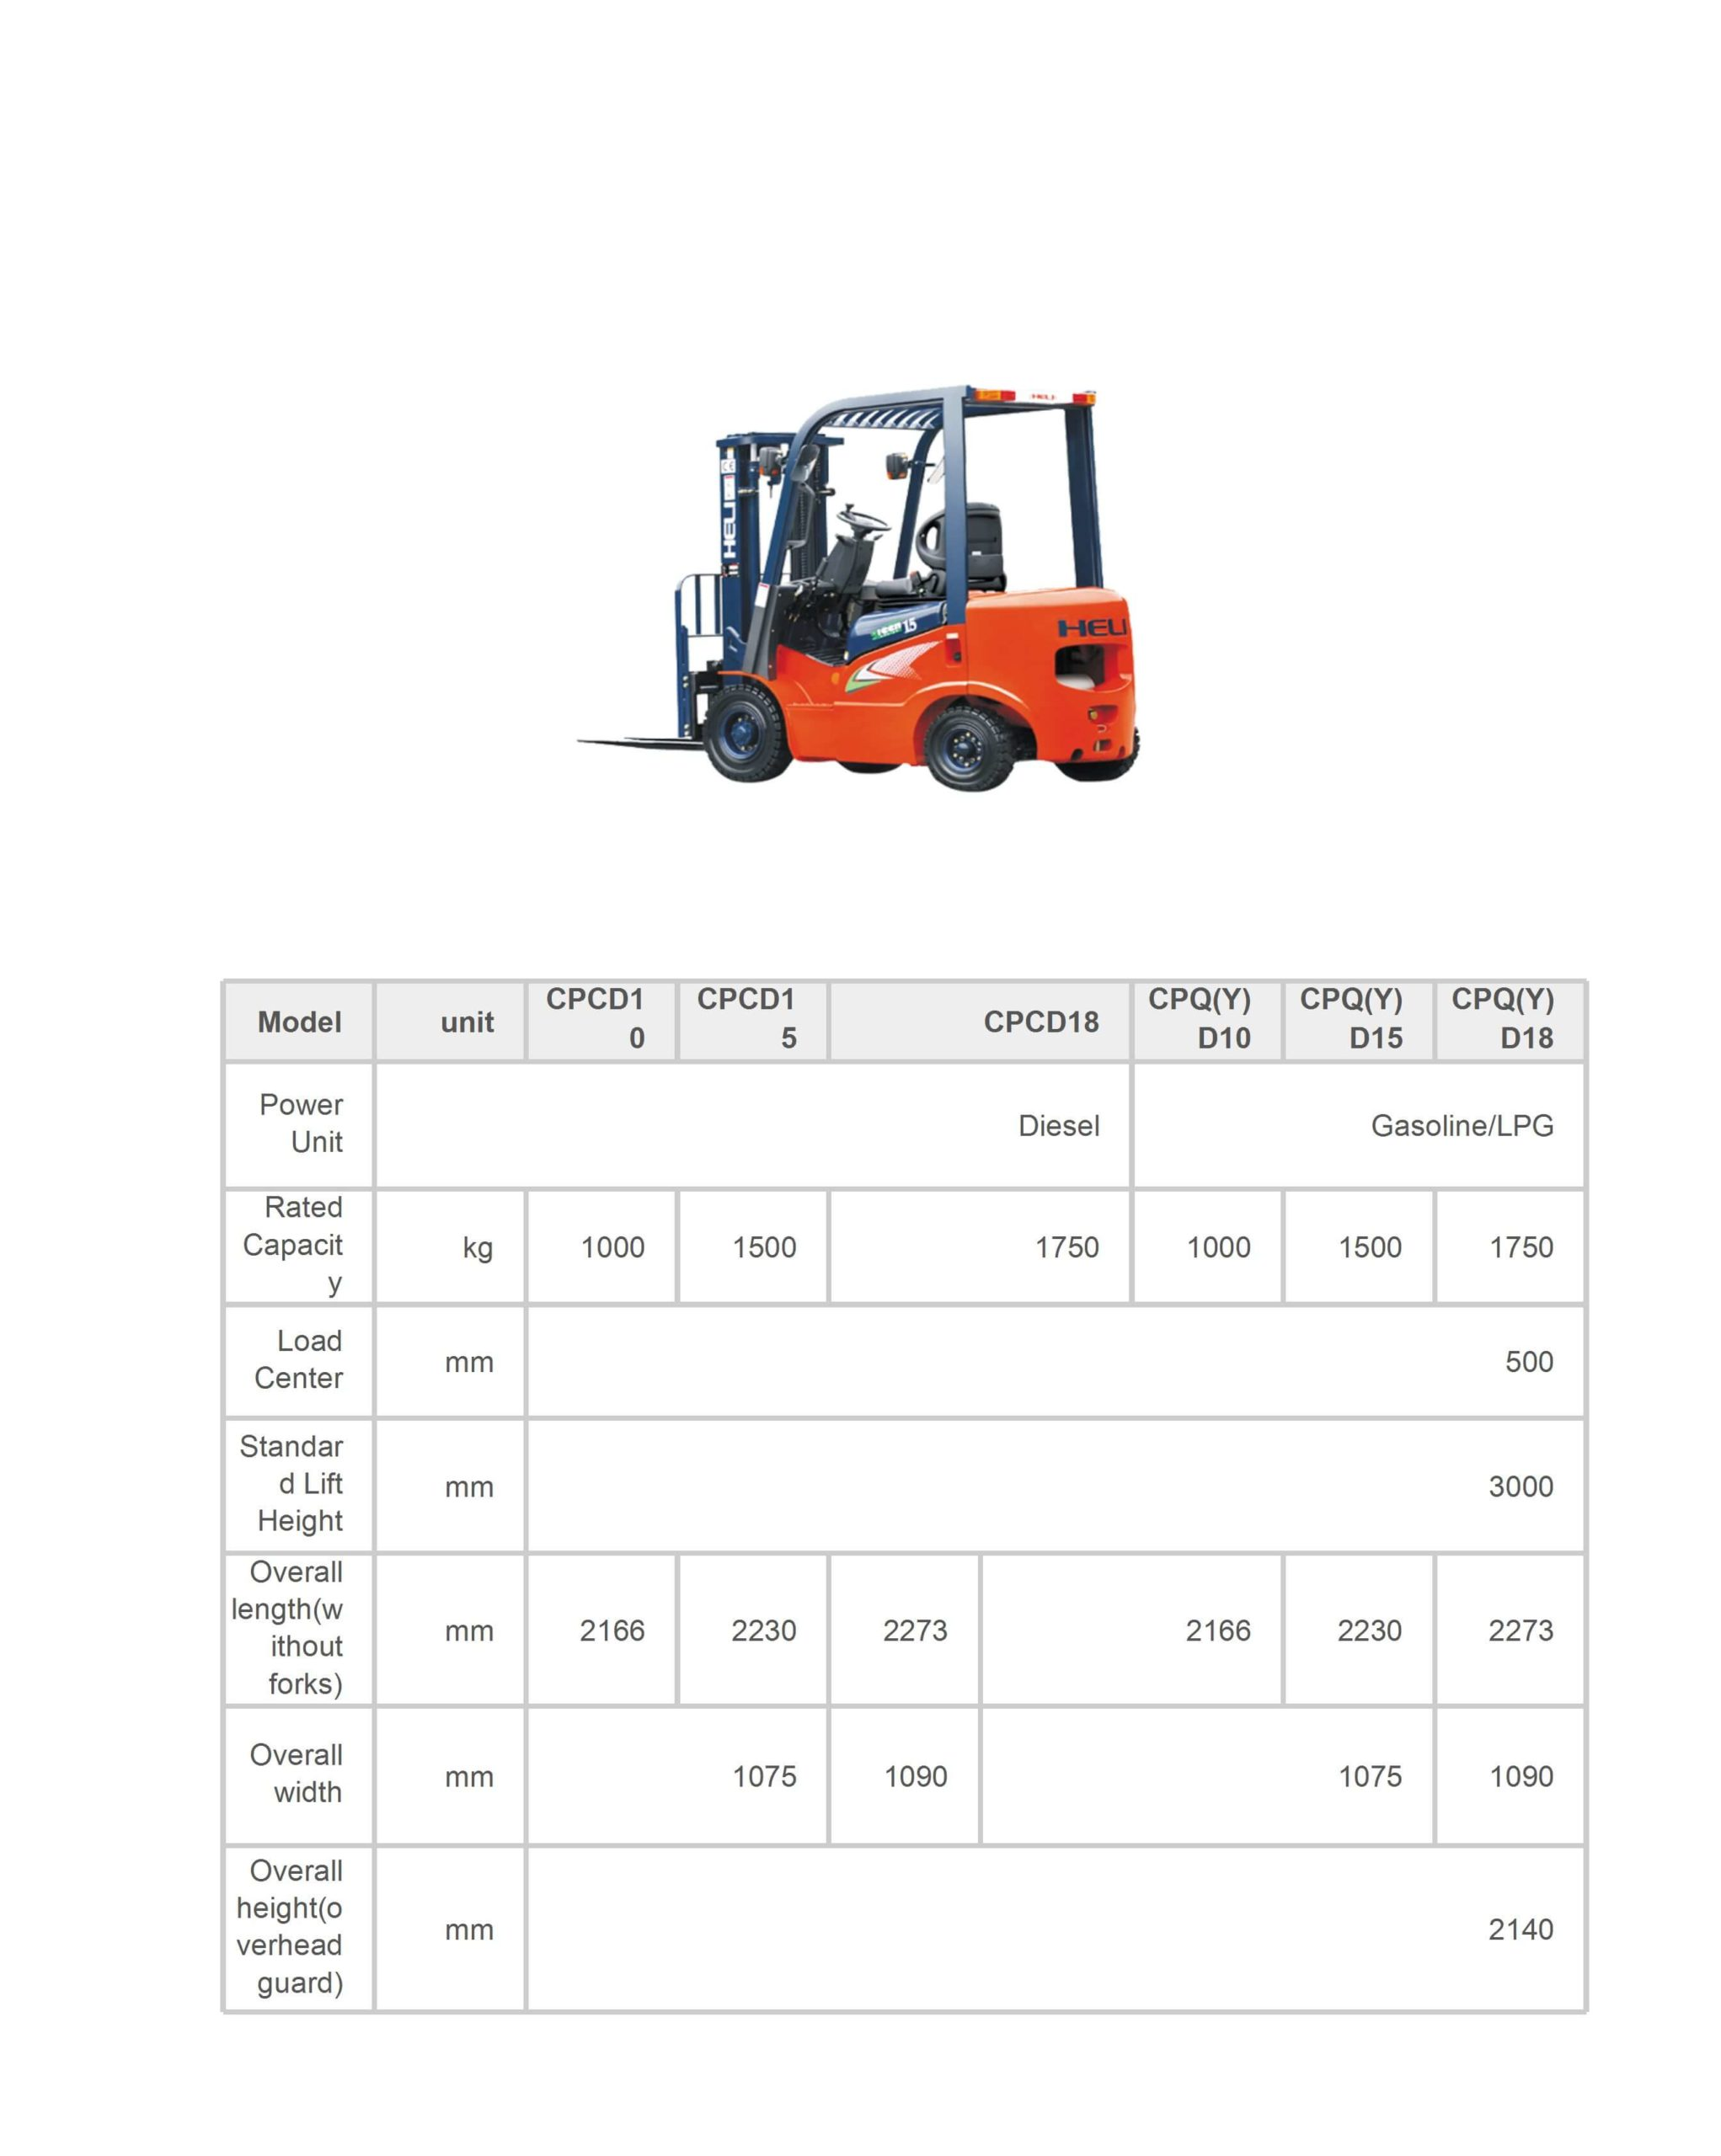 disel 1-1.8 ton-specification